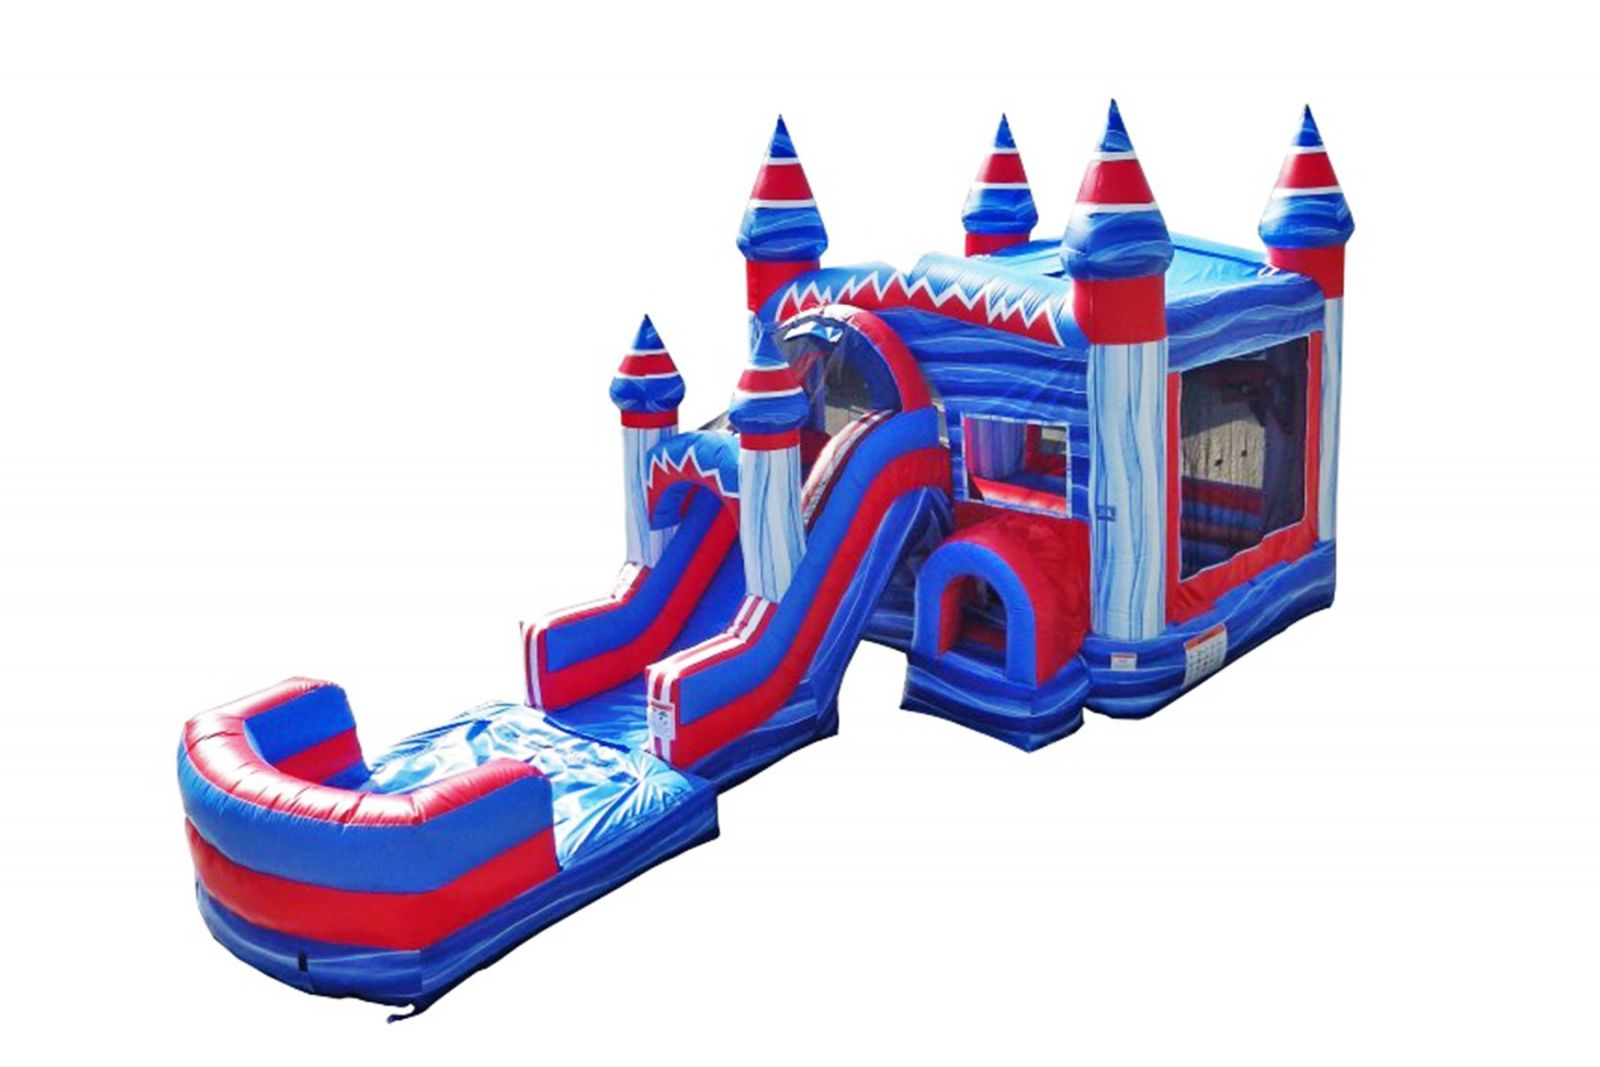 Inflatable bounce castle with water slide